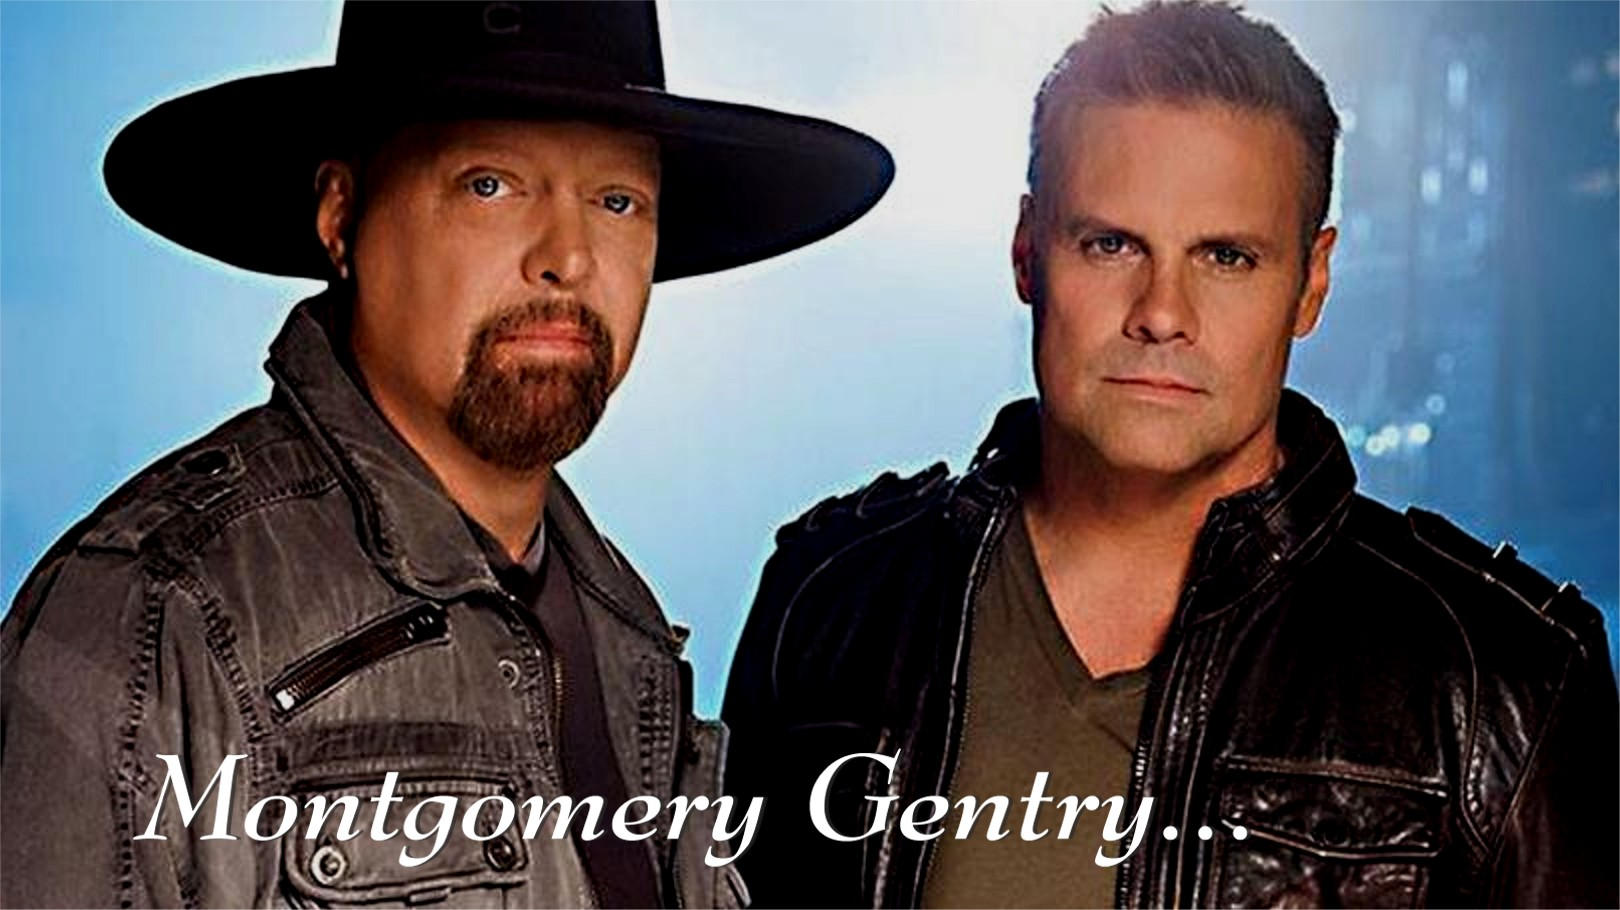 Strictly Country Magazine Montgomery Gentry title